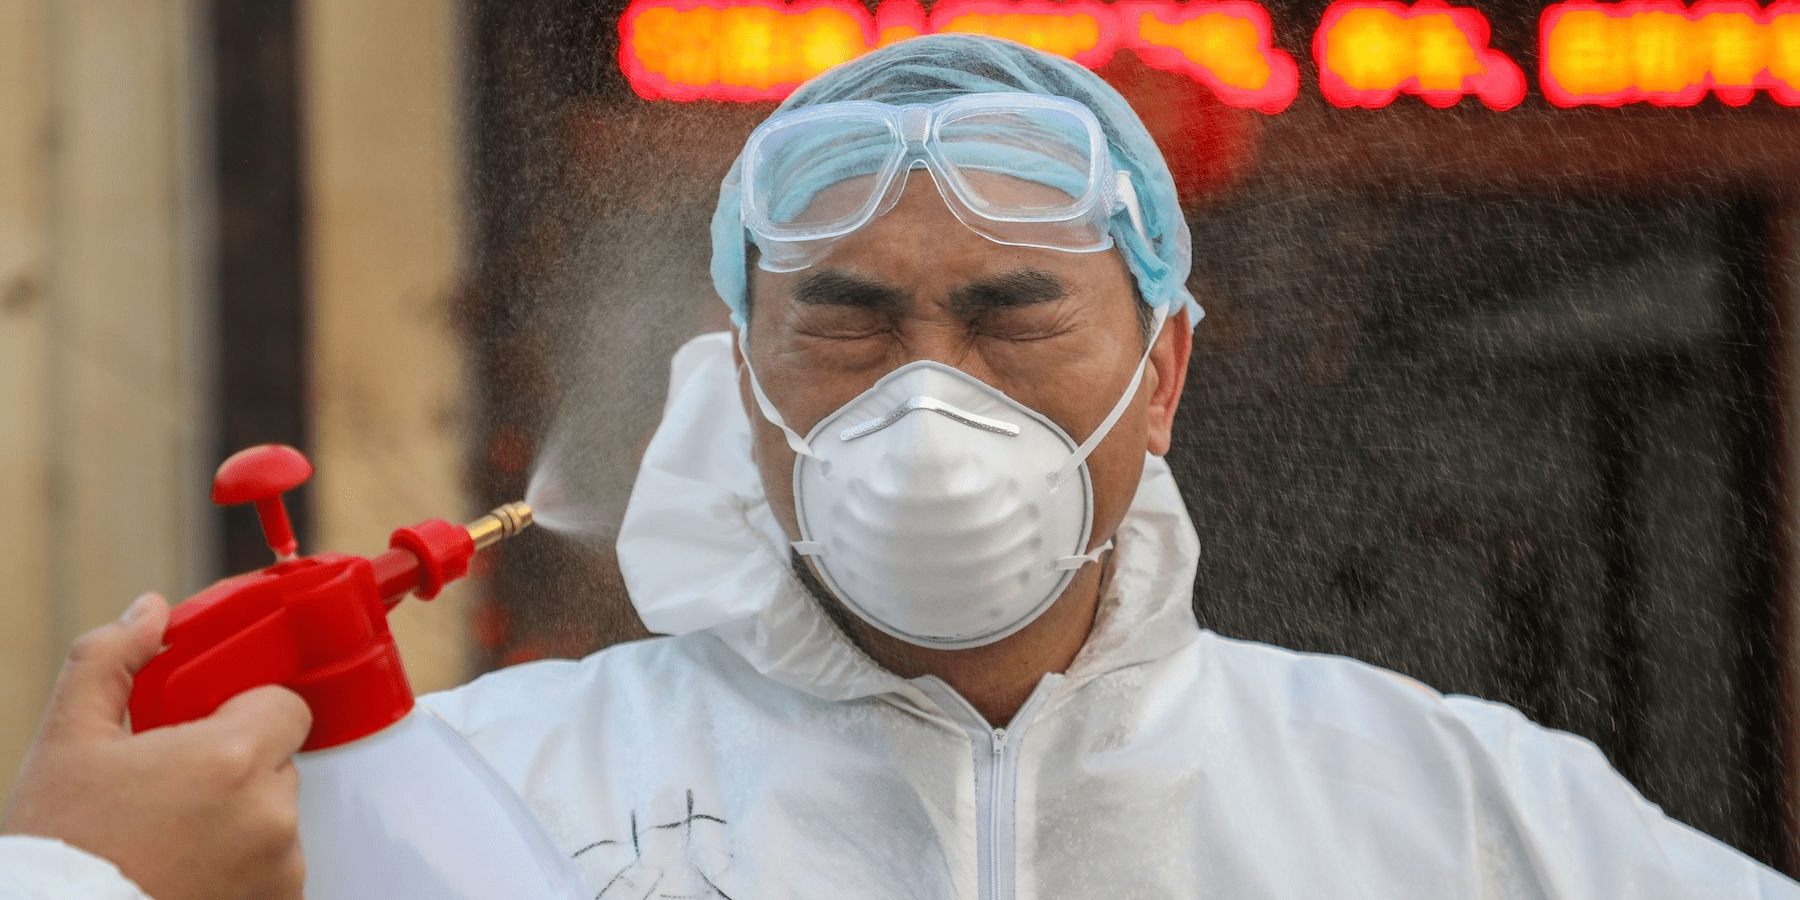 Wuhan residents told to report body temperature daily to fight ...